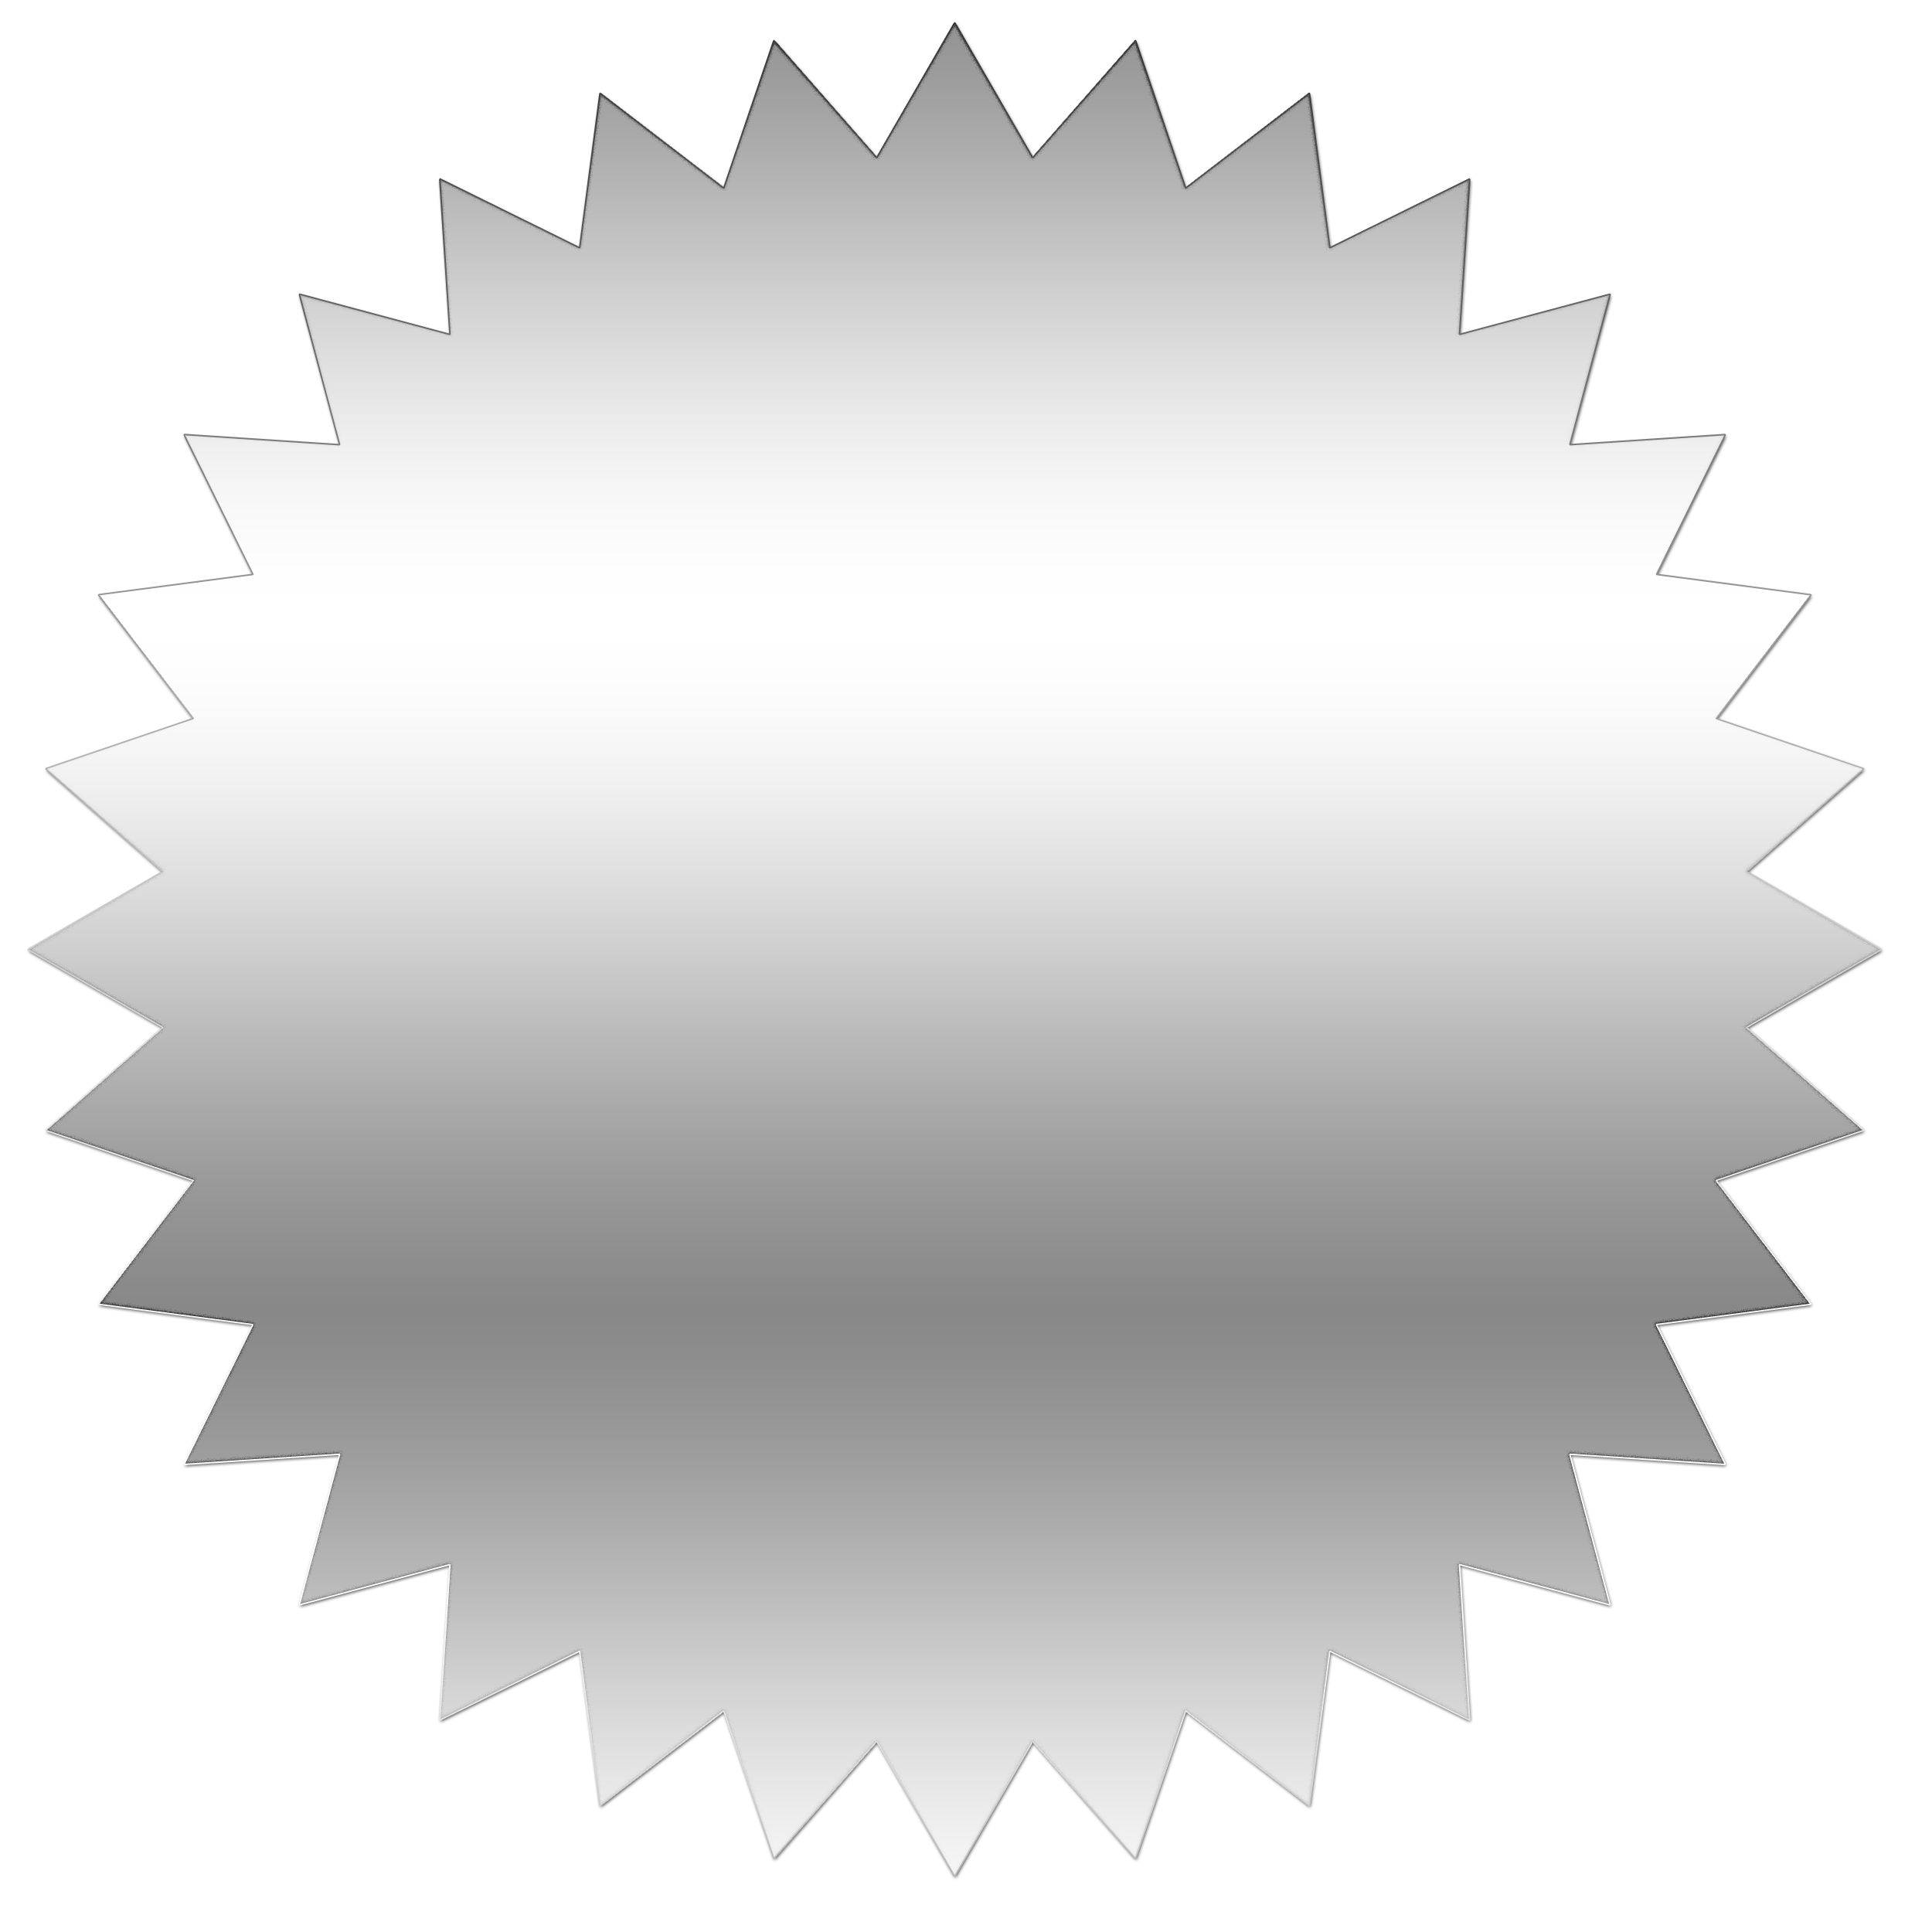 Silver purepng transparent cc. Free saw blade png image black and white image freeuse